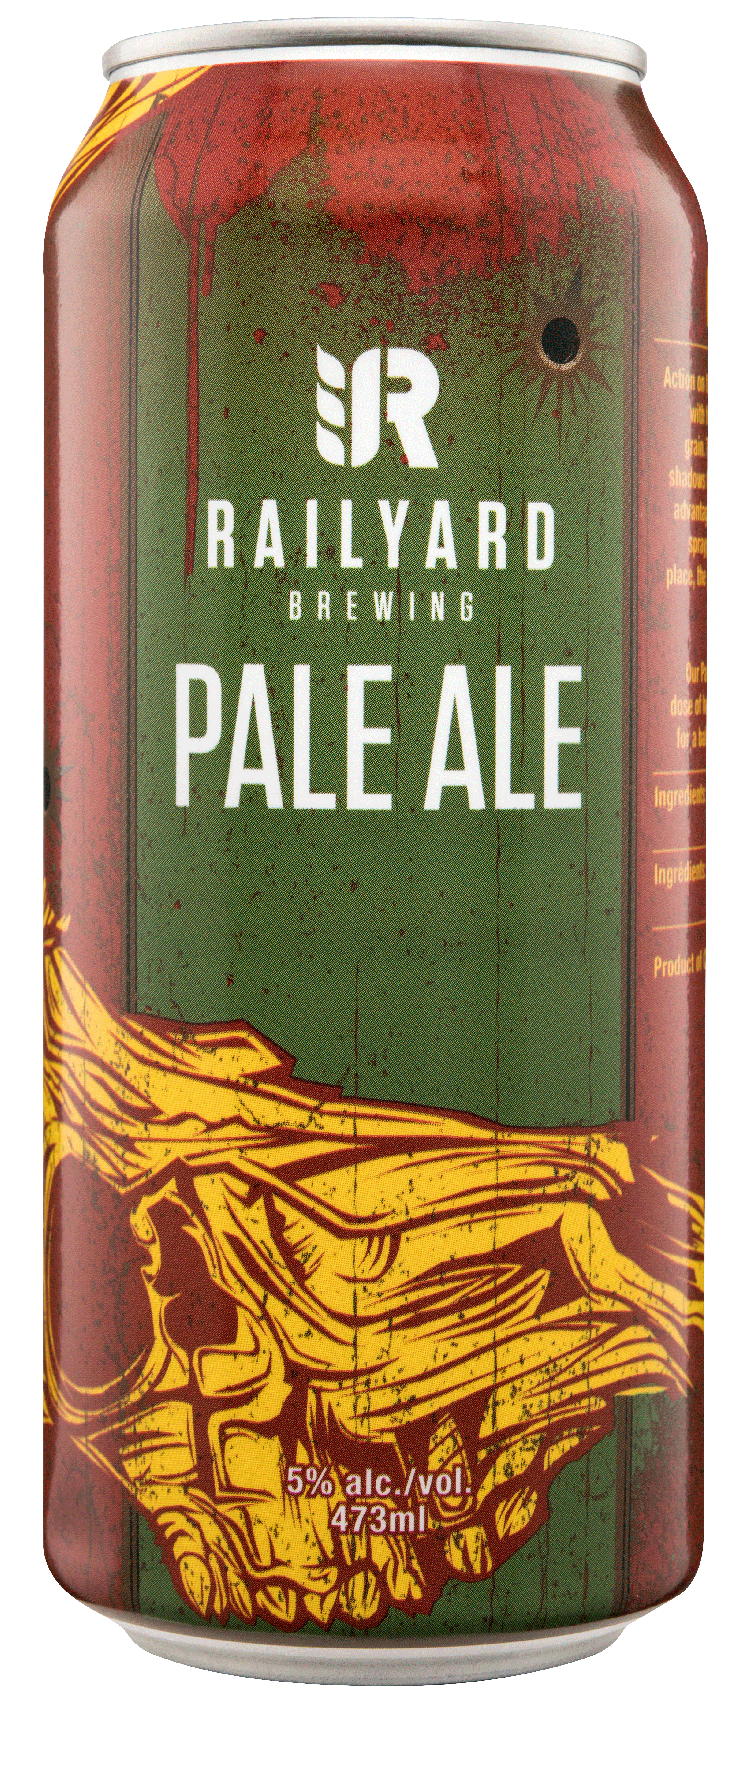 RAILYARD PALE ALE   A classic Westcoast stop on the Railyard tracks with the unmistakeable grapefruit and orange zest hop from both boil and dry hop additions, balanced with a caramel malt backbone and dried out perfectly to make sure you are getting on board for until the last stop.